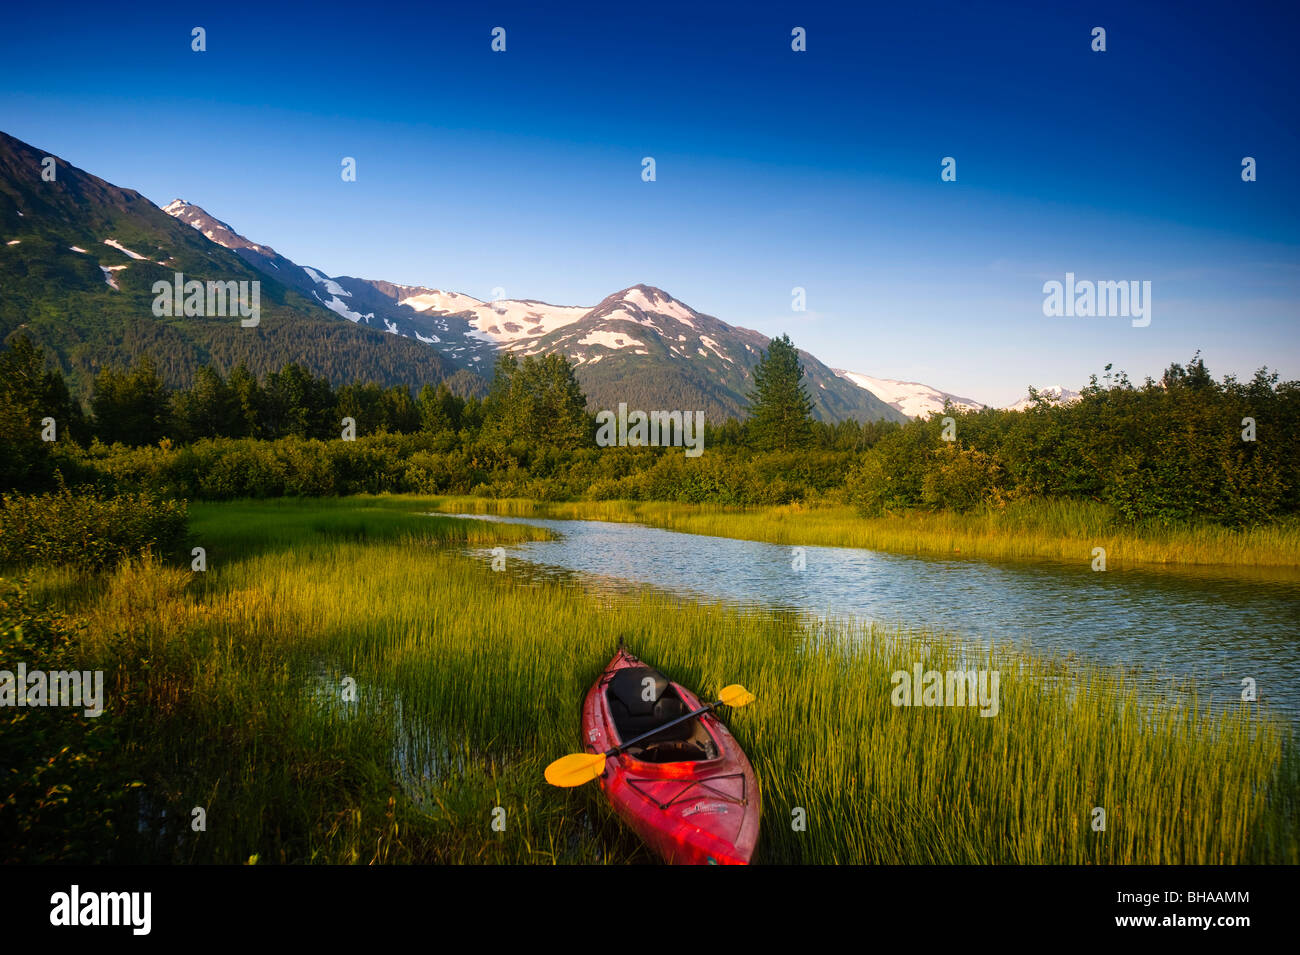 Kayak and Portage Creek in Portage Valley, Southcentral Alaska during Summer - Stock Image